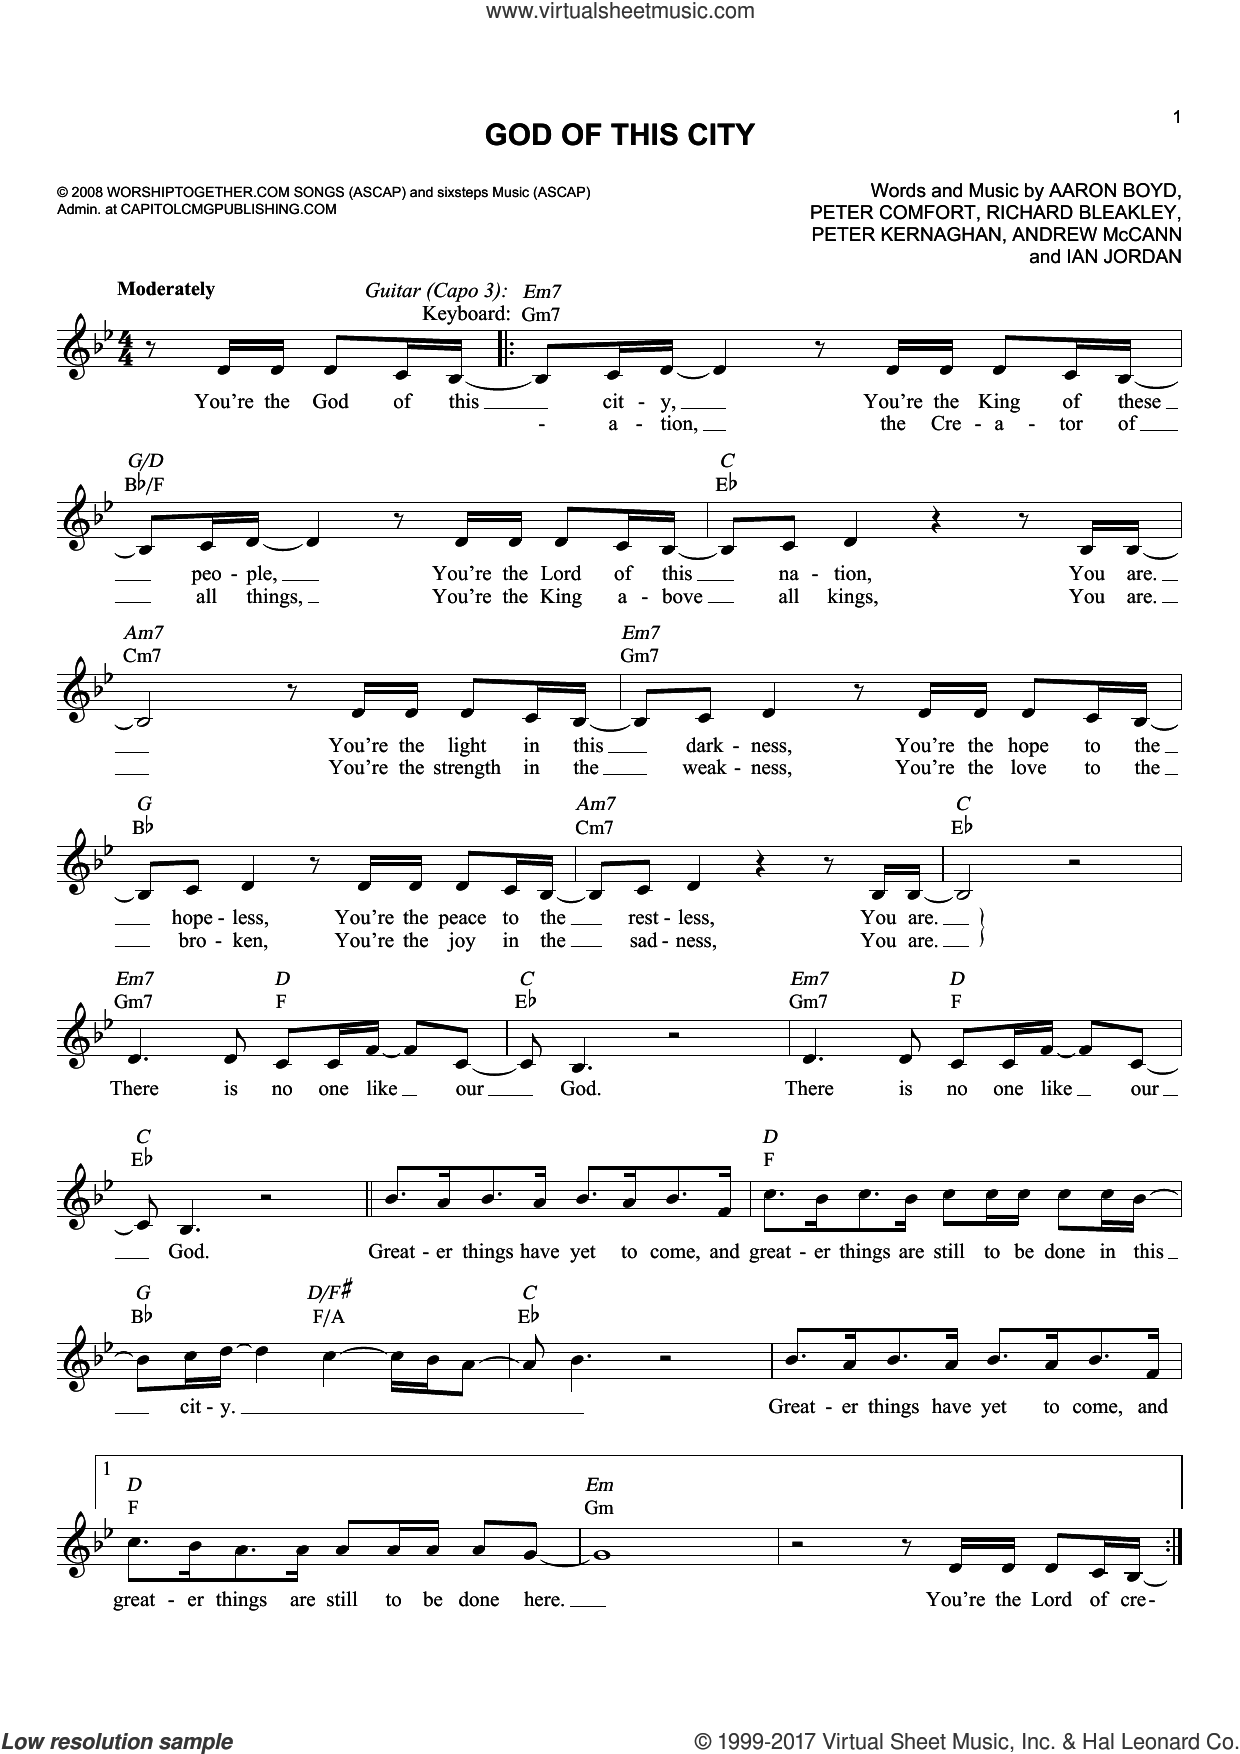 God Of This City sheet music for voice and other instruments (fake book) by Chris Tomlin, Aaron Boyd, Andrew McCann, Ian Jordan, Peter Comfort, Peter Kernaghan and Richard Bleakley, intermediate